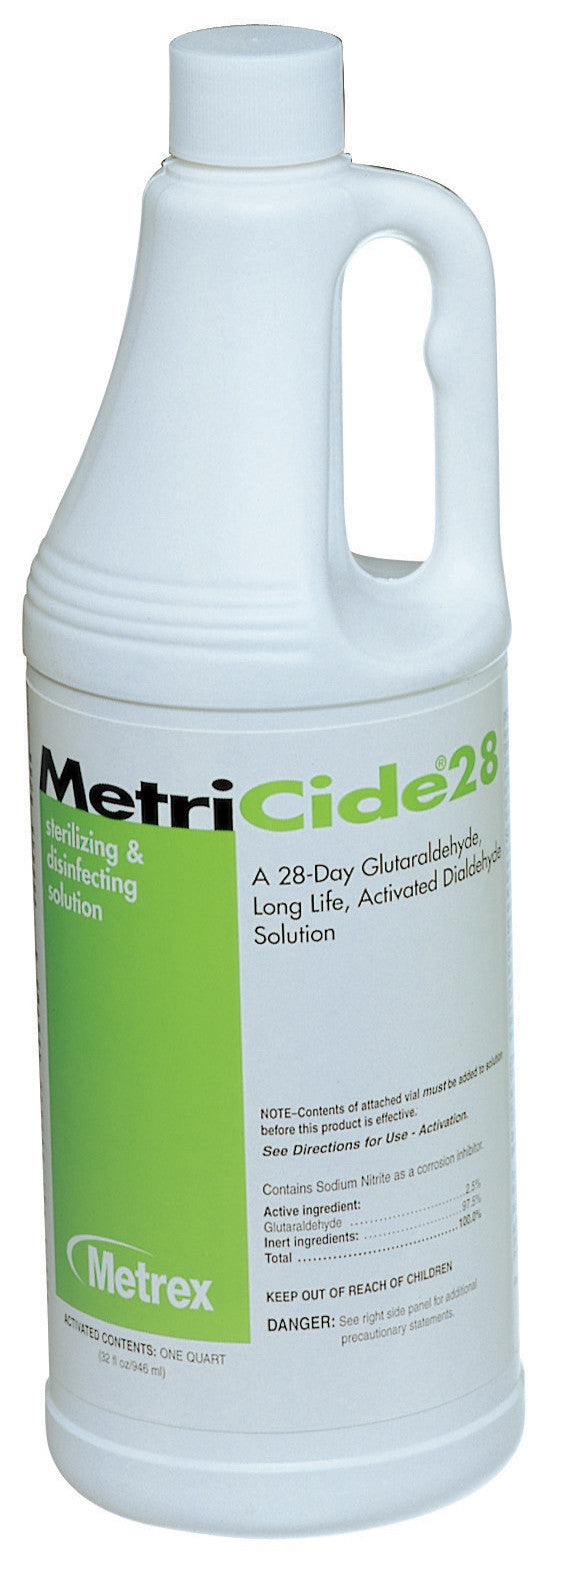 28054100 Instrument Disinfectant / Sterilizer MetriCide®28 Liquid 1 Quart